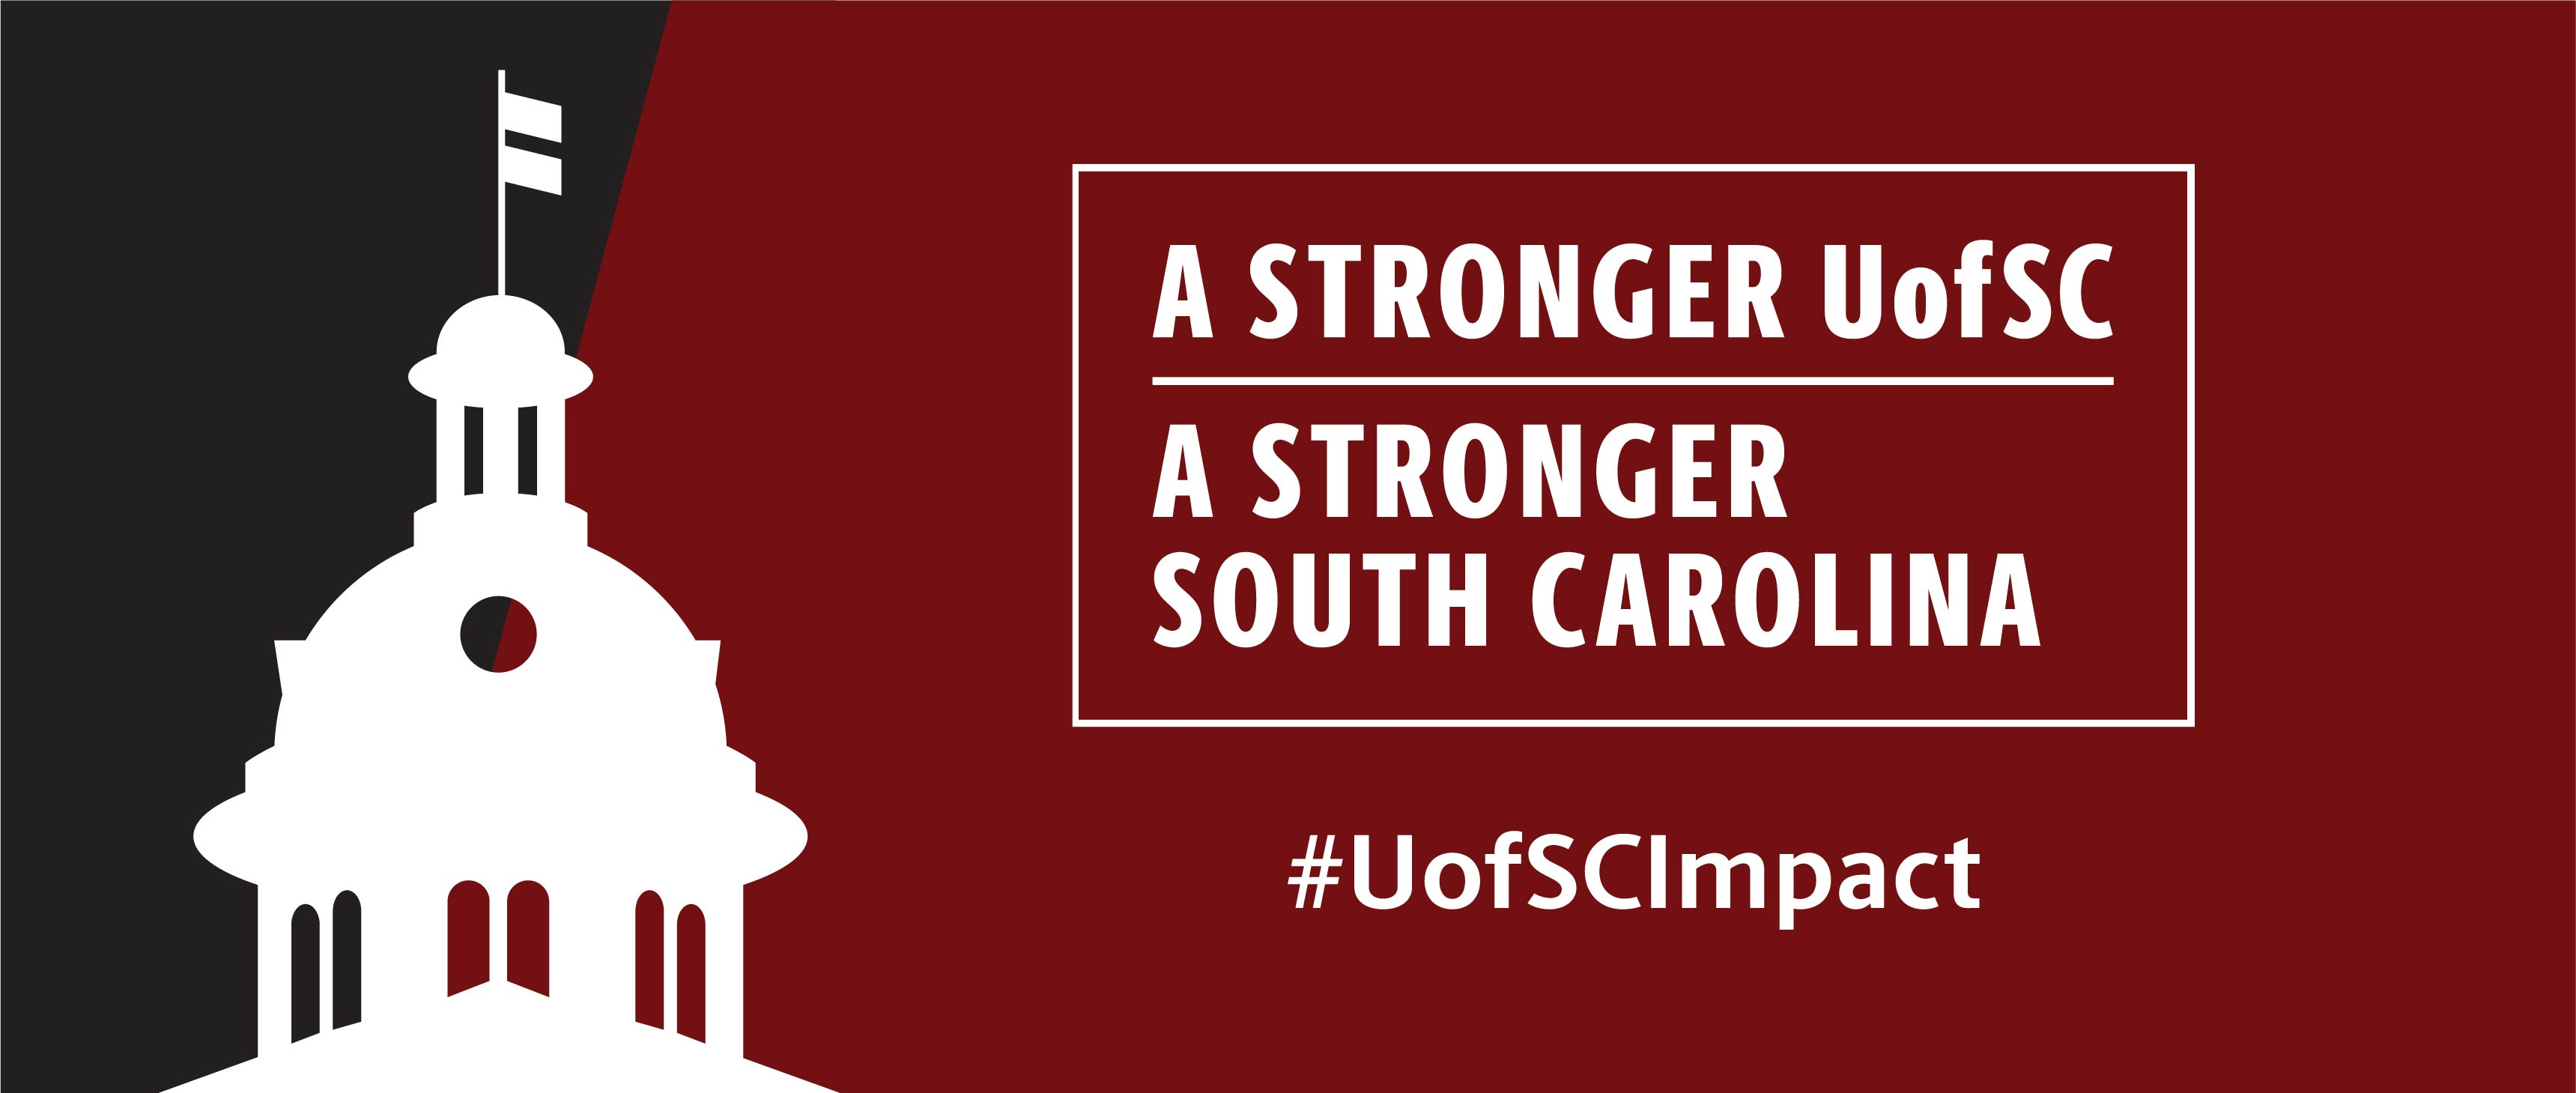 A Stronger UofSC, A Stronger South Carolina